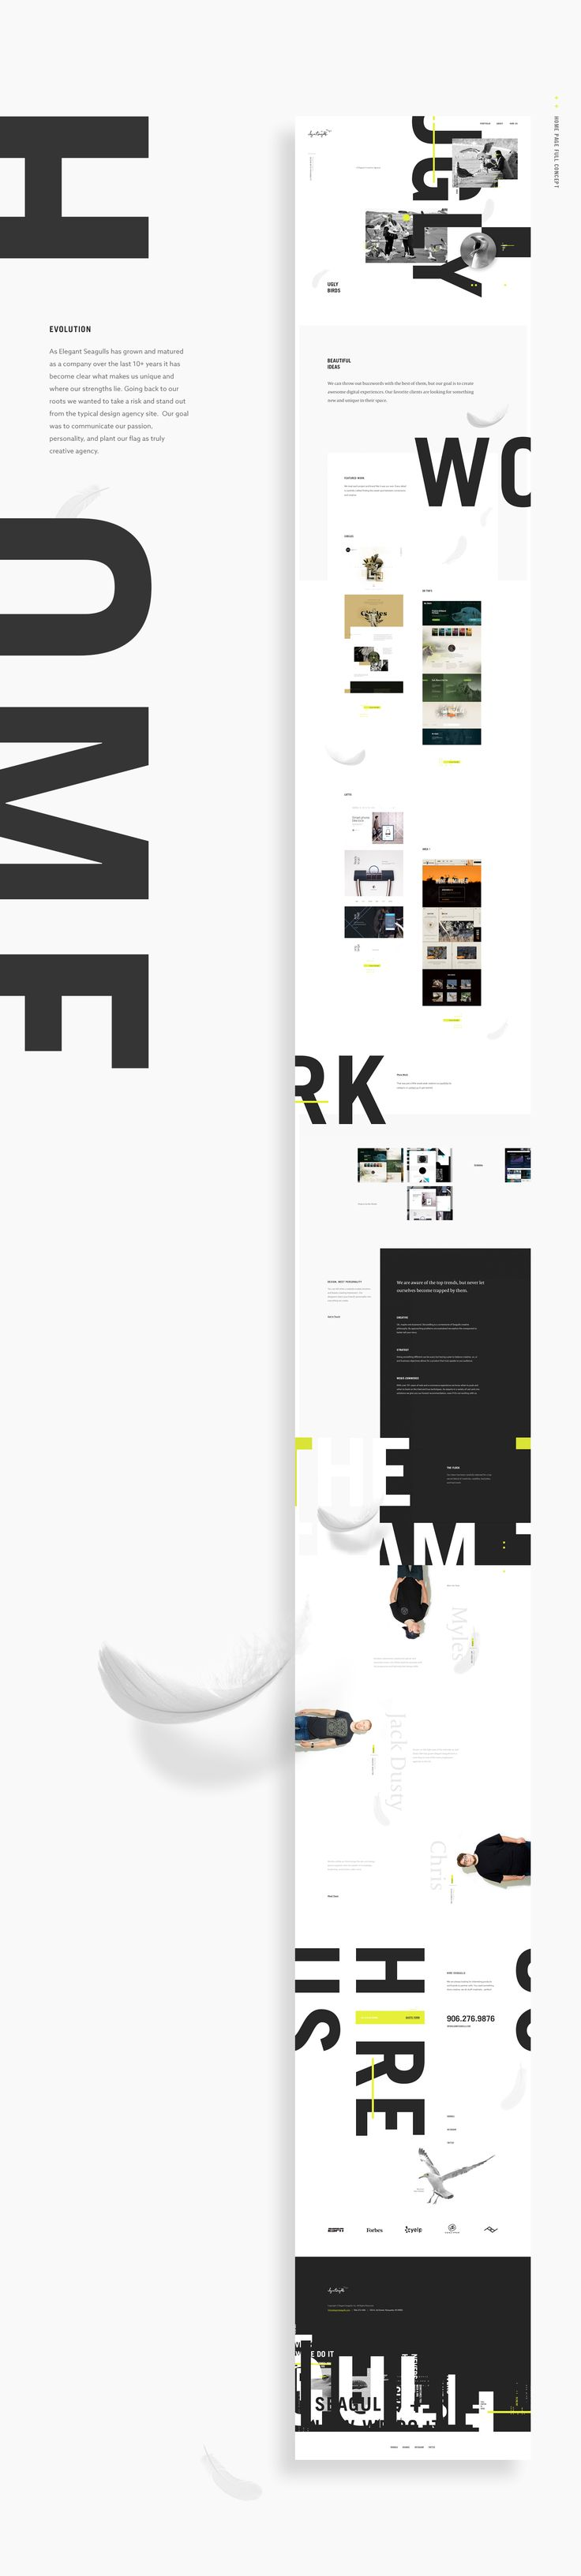 As Elegant Seagulls has grown and matured as a company over the last 10+ years it has become clear what makes us unique and where our strengths lie. Going back to our roots we wanted to take a risk and stand out from the typical design agency site. Our go…